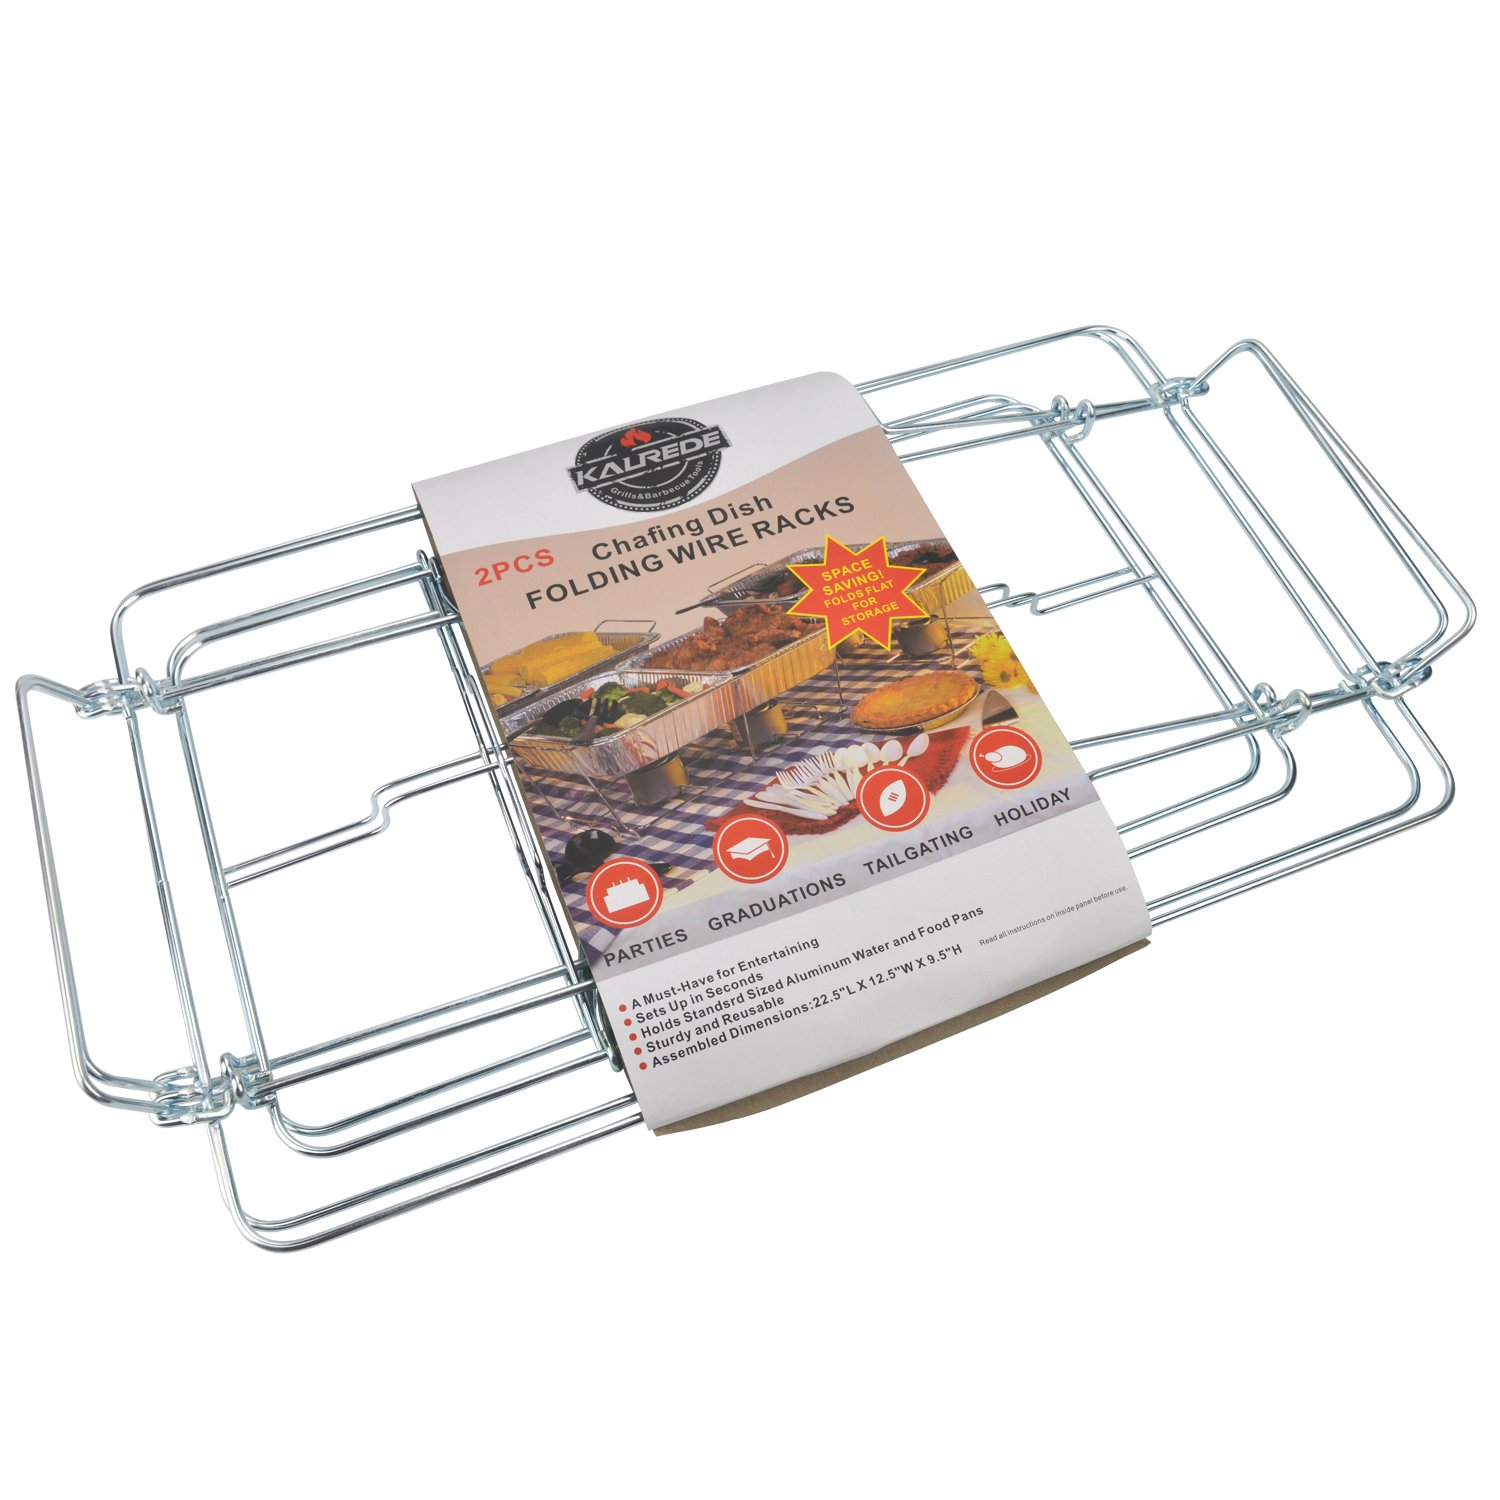 KALREDE Chafing Dish Rack Set - Folding & Foldable Chafing Dishes Stand Holder -Super Sturdy Buffet Set Buffet Warmer Food Warmer Rack -Chrome Wire Chafing Chafer Stand for Party Accessories( 2 Pack) by Kalrede (Image #2)